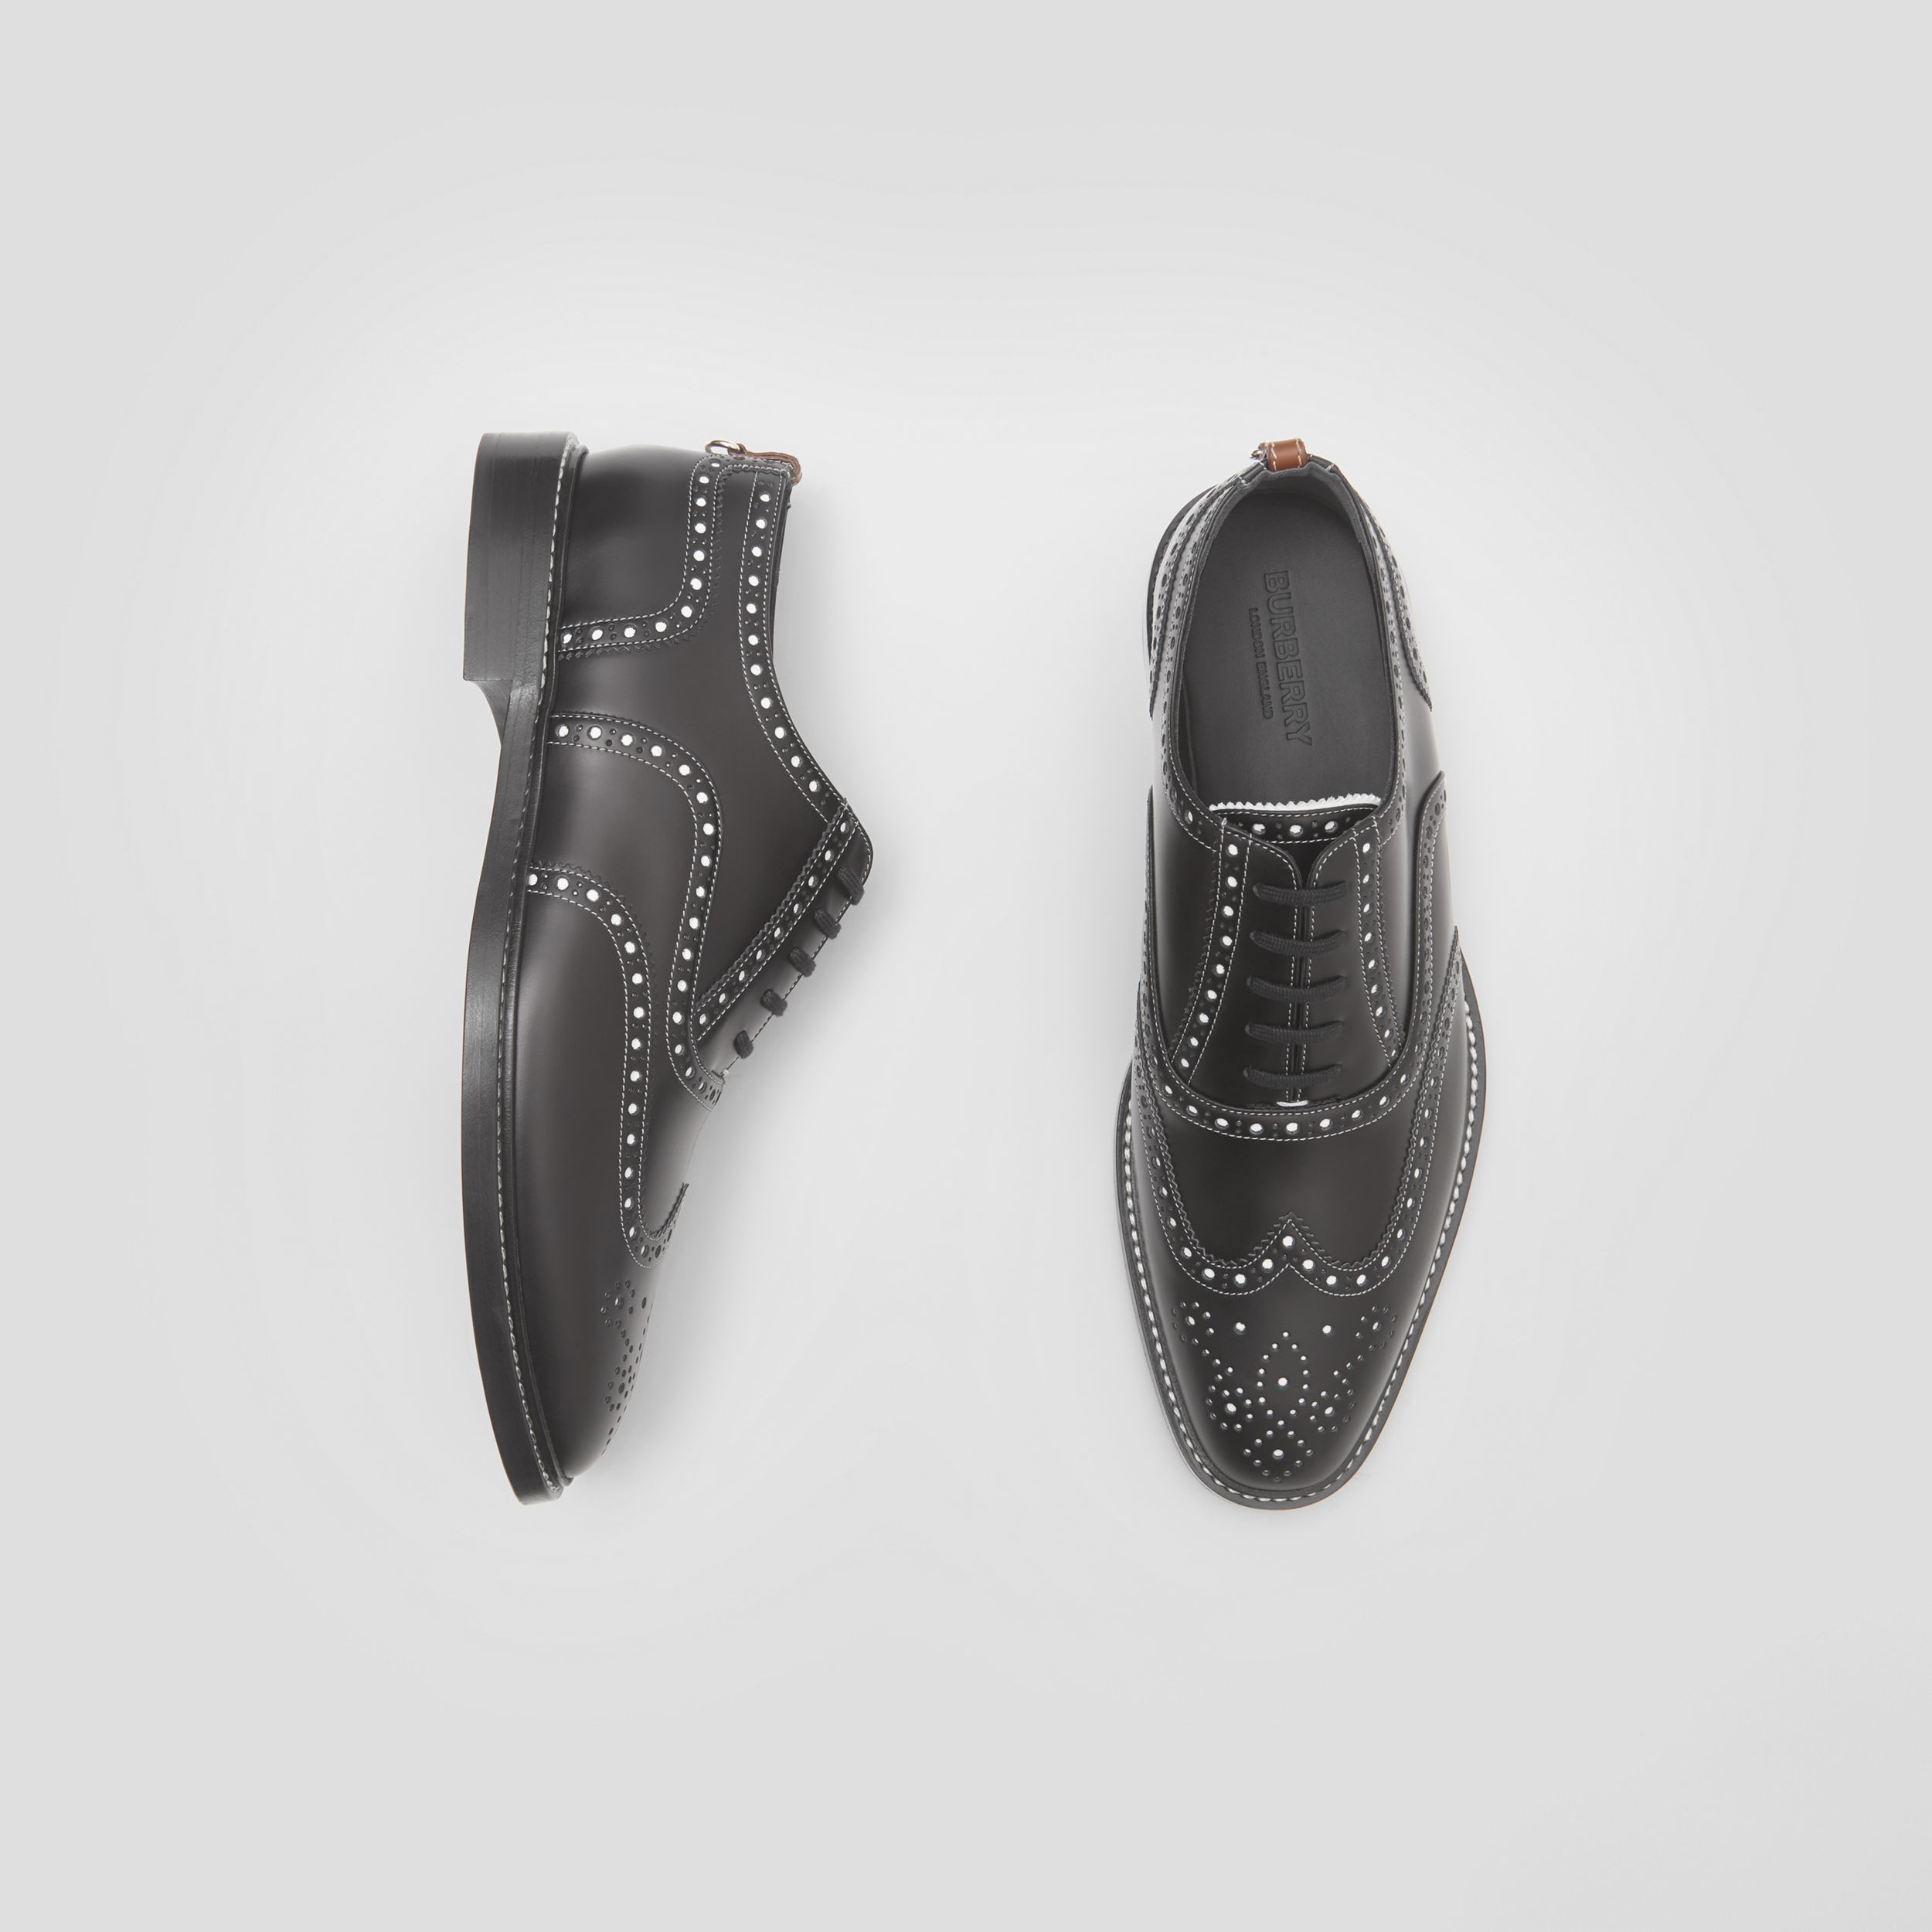 D-ring Detail Two-tone Leather Oxford Brogues in Black/white - Men | Burberry - 1